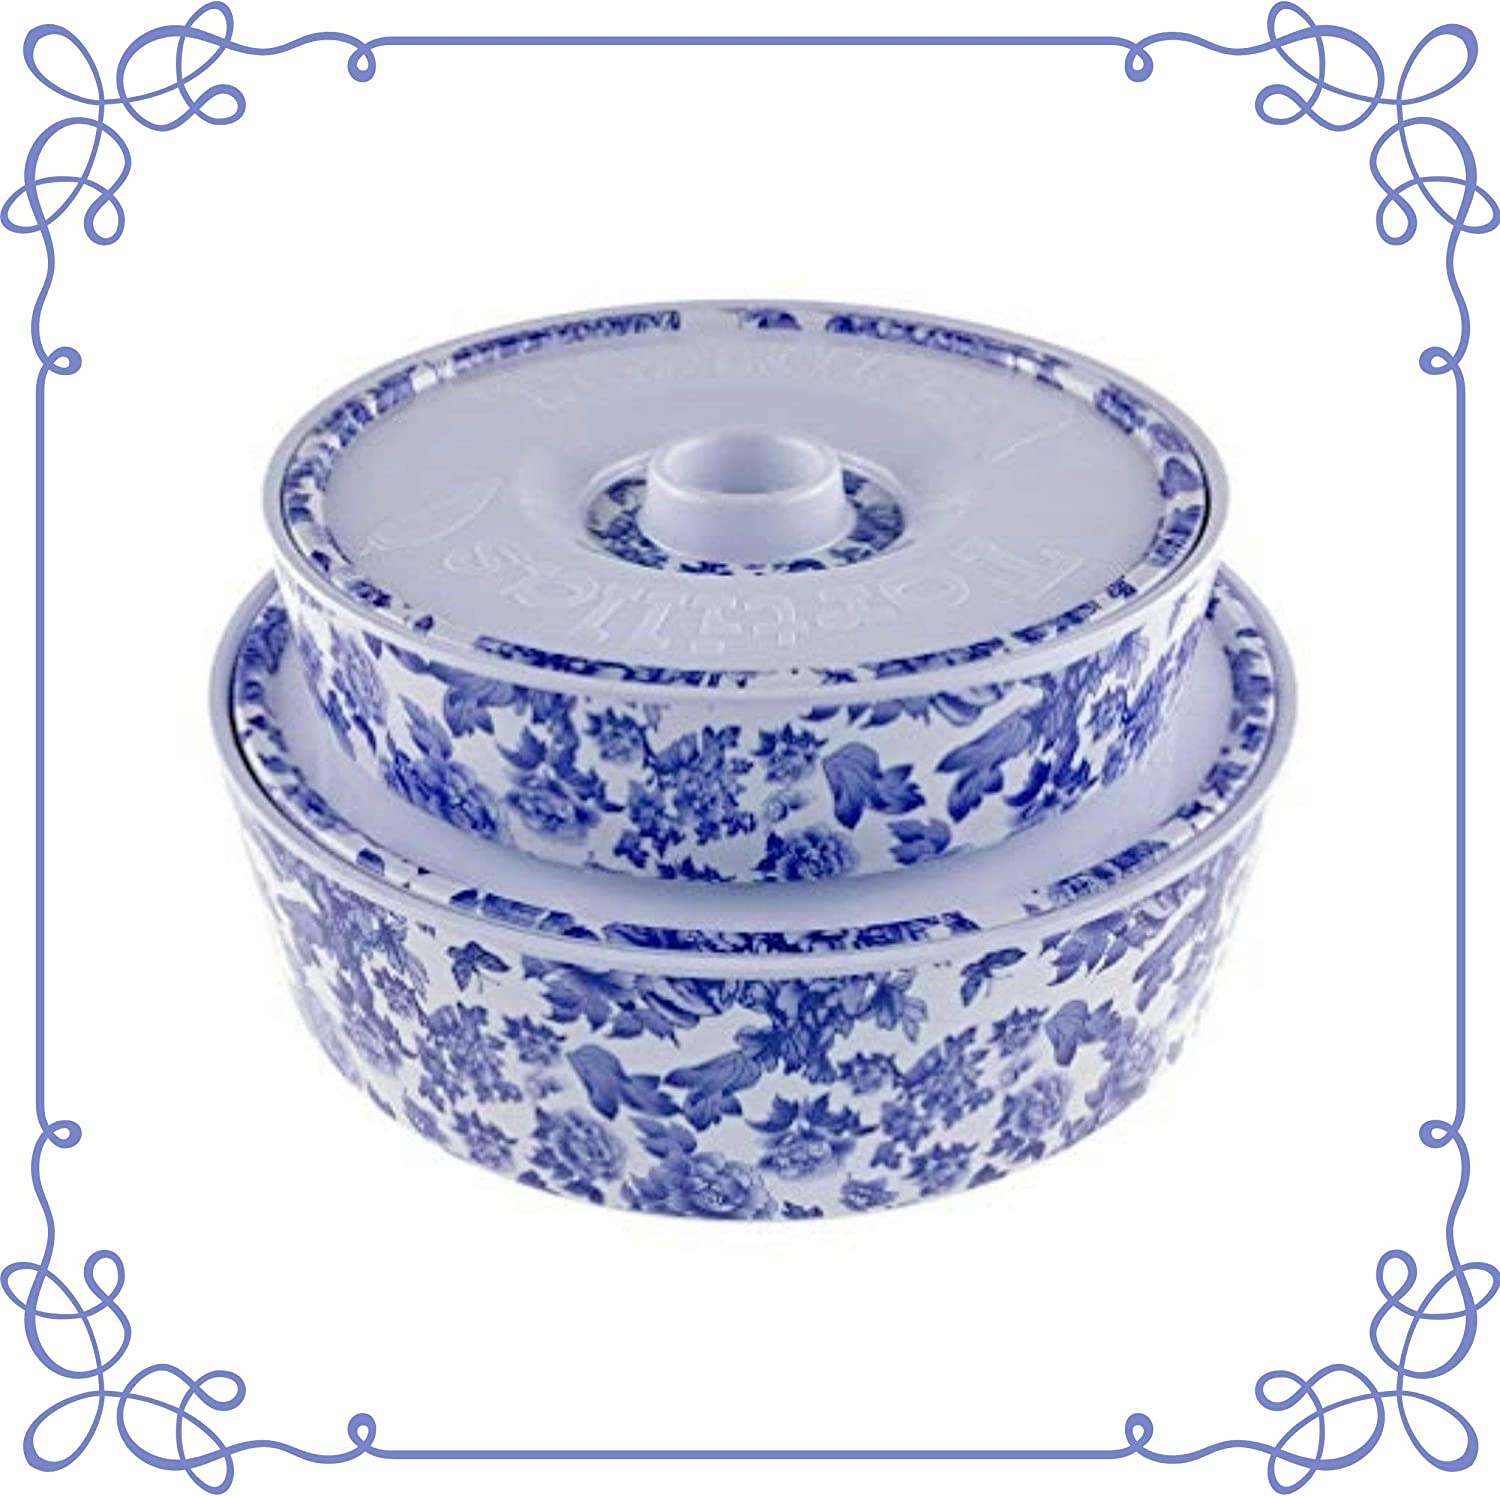 ARC, 6519F Tortilla Warmer, 100% Melamine(Not Porcelain), One large & One small combination, FDA Safe, Pancake Keeper Food Container, Keeping Waffles Tacos Warm (White with blue floral design)